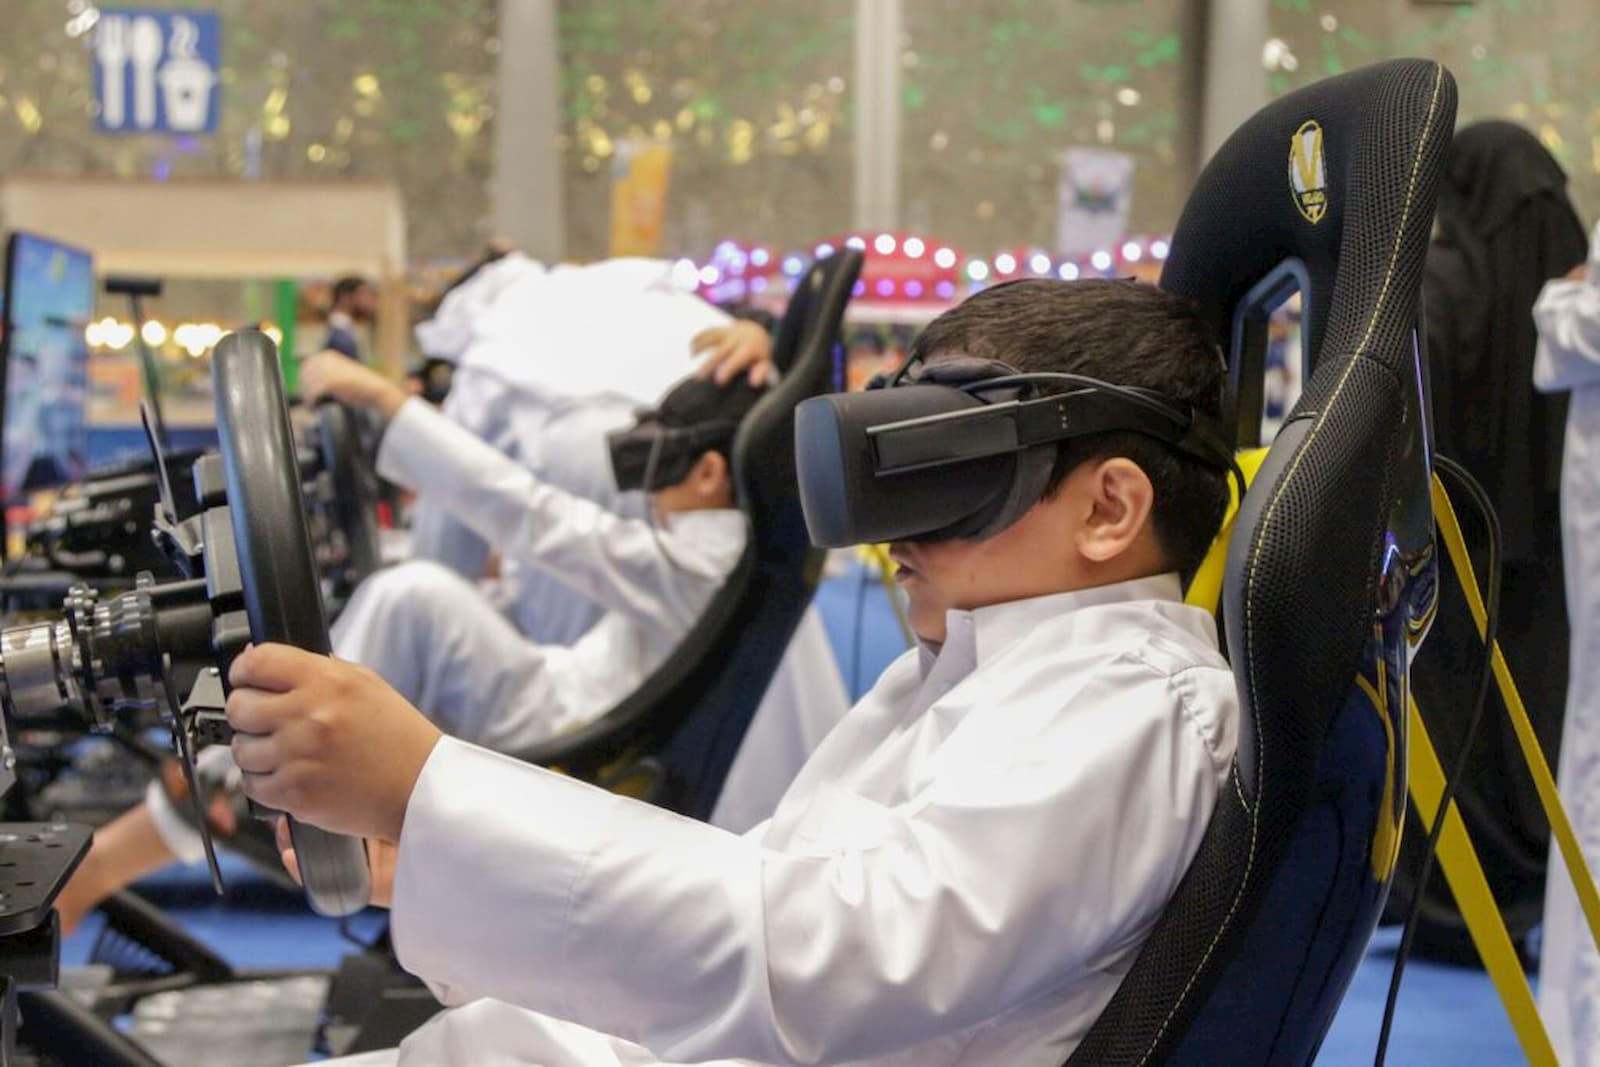 This is an image of a kids enjoying VR games at SEC.